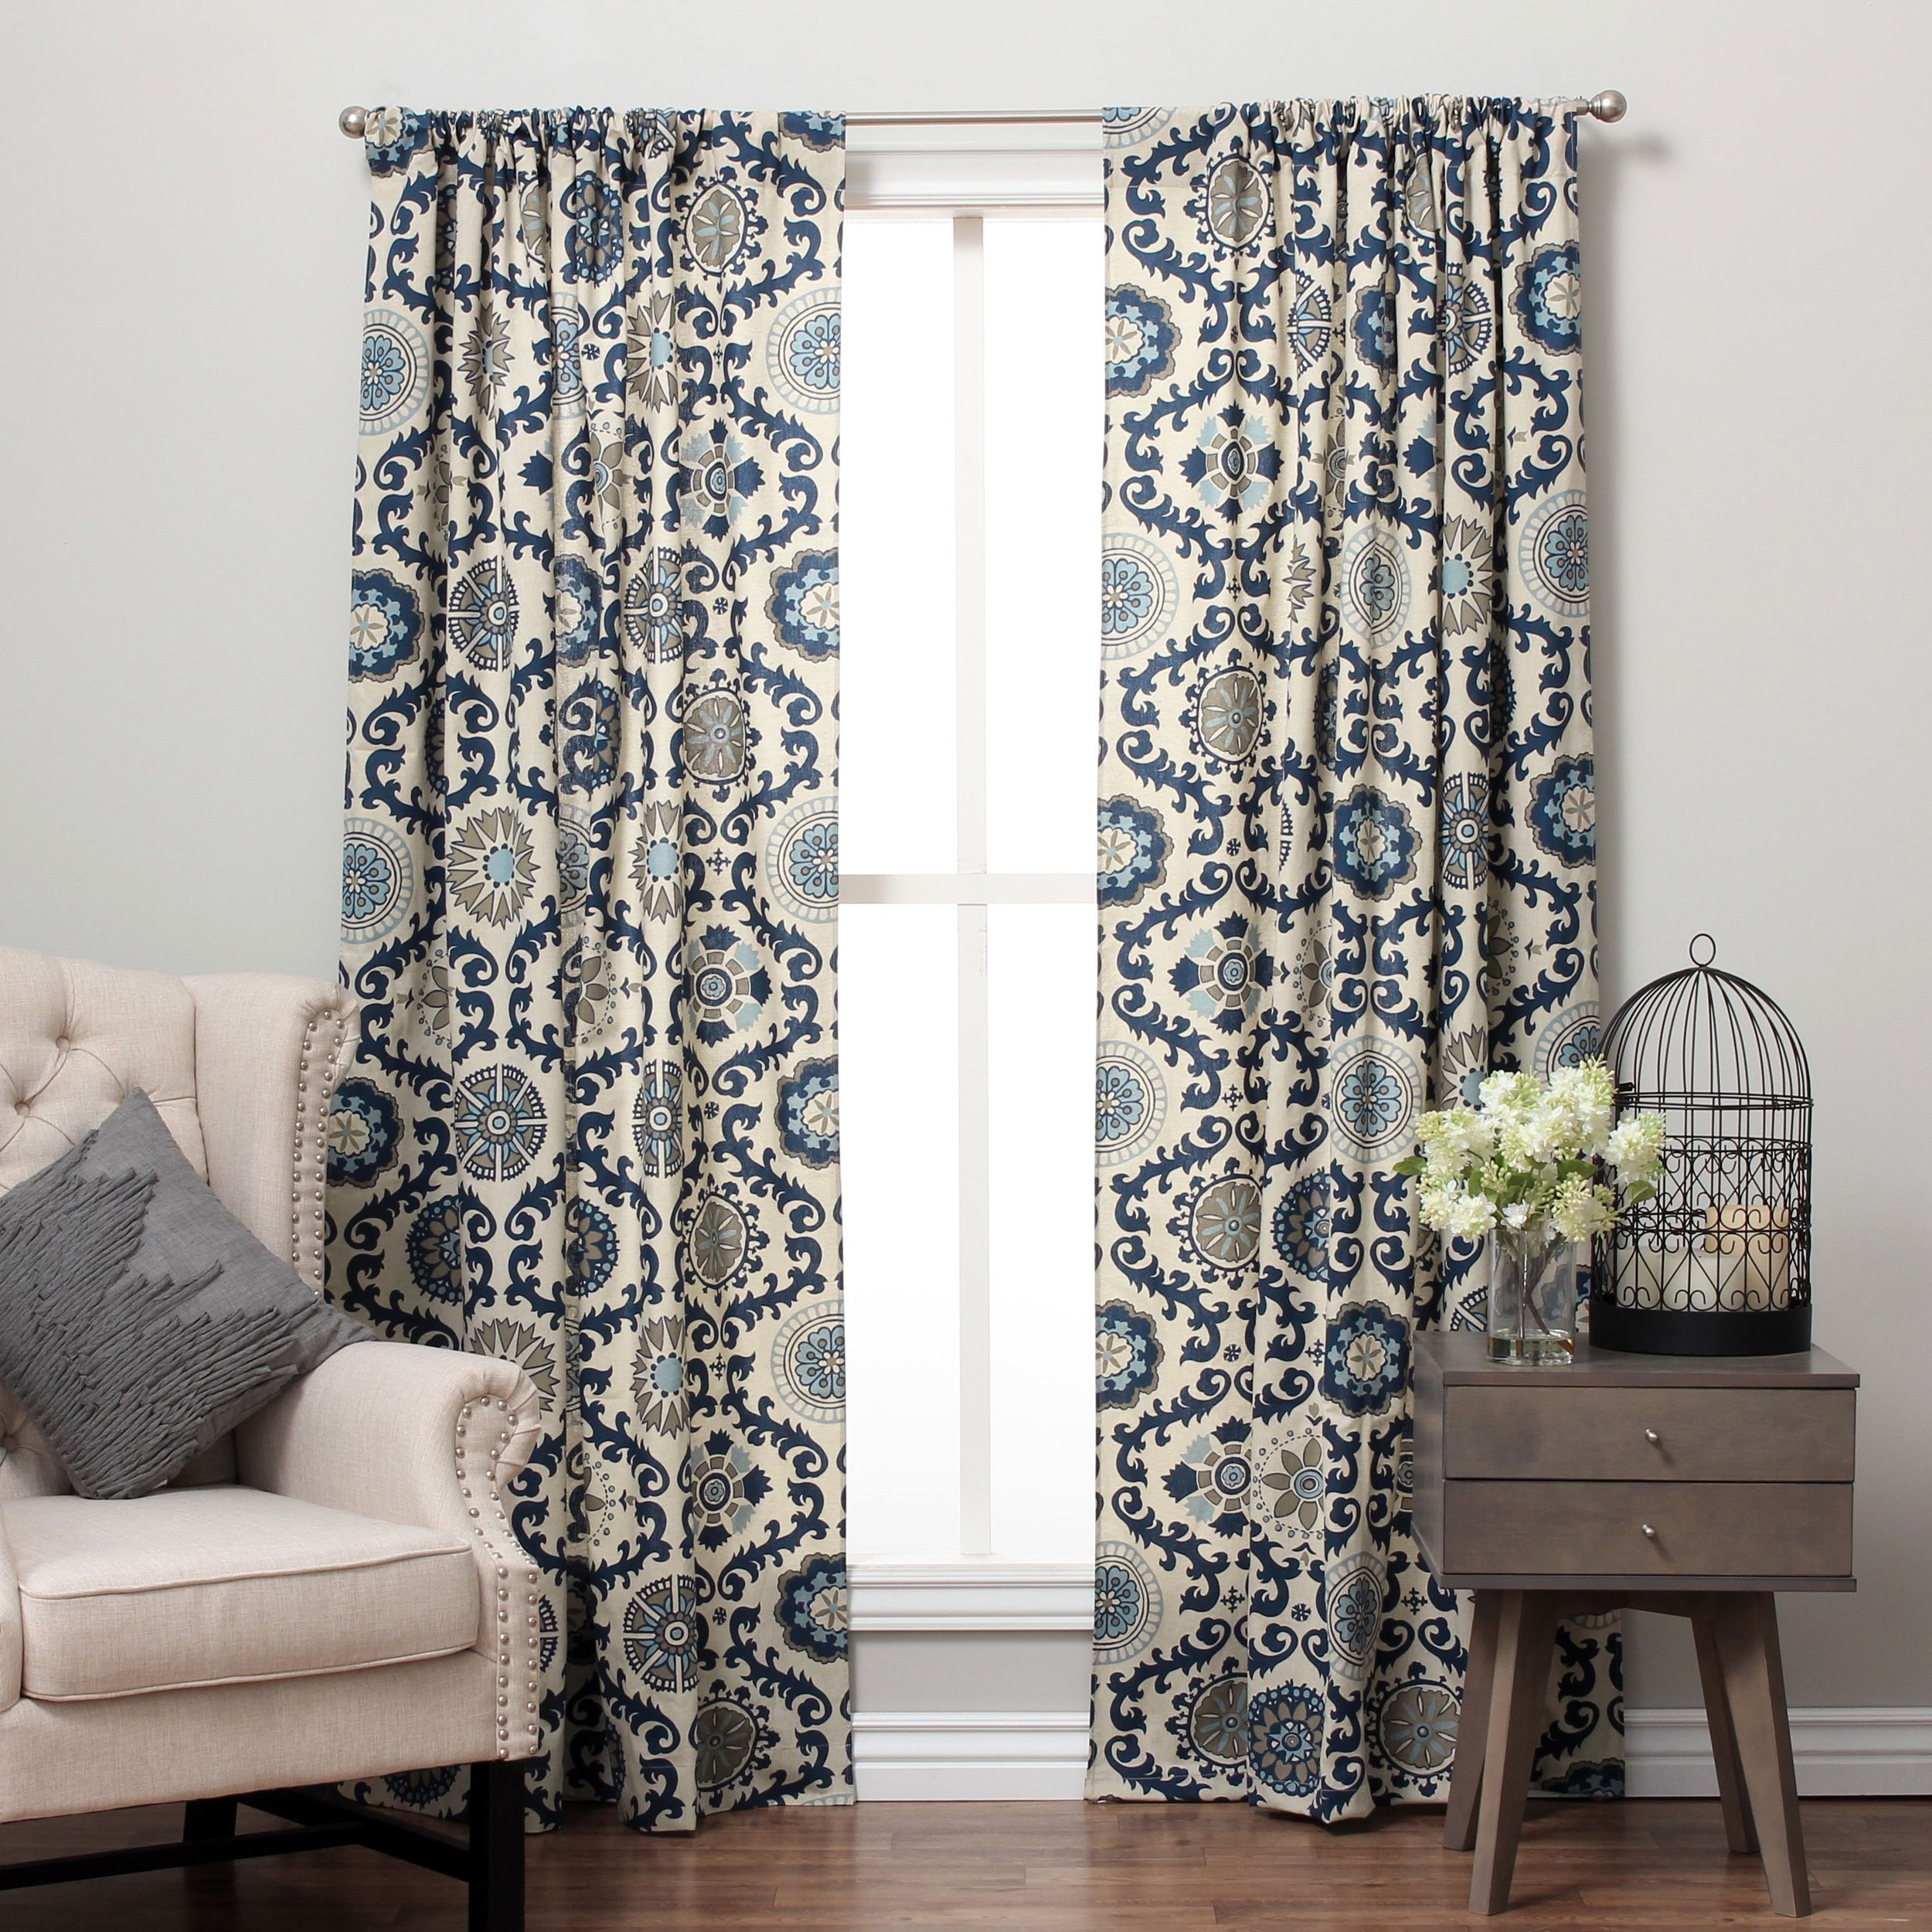 Update your home with these elegant suzani design printed curtains